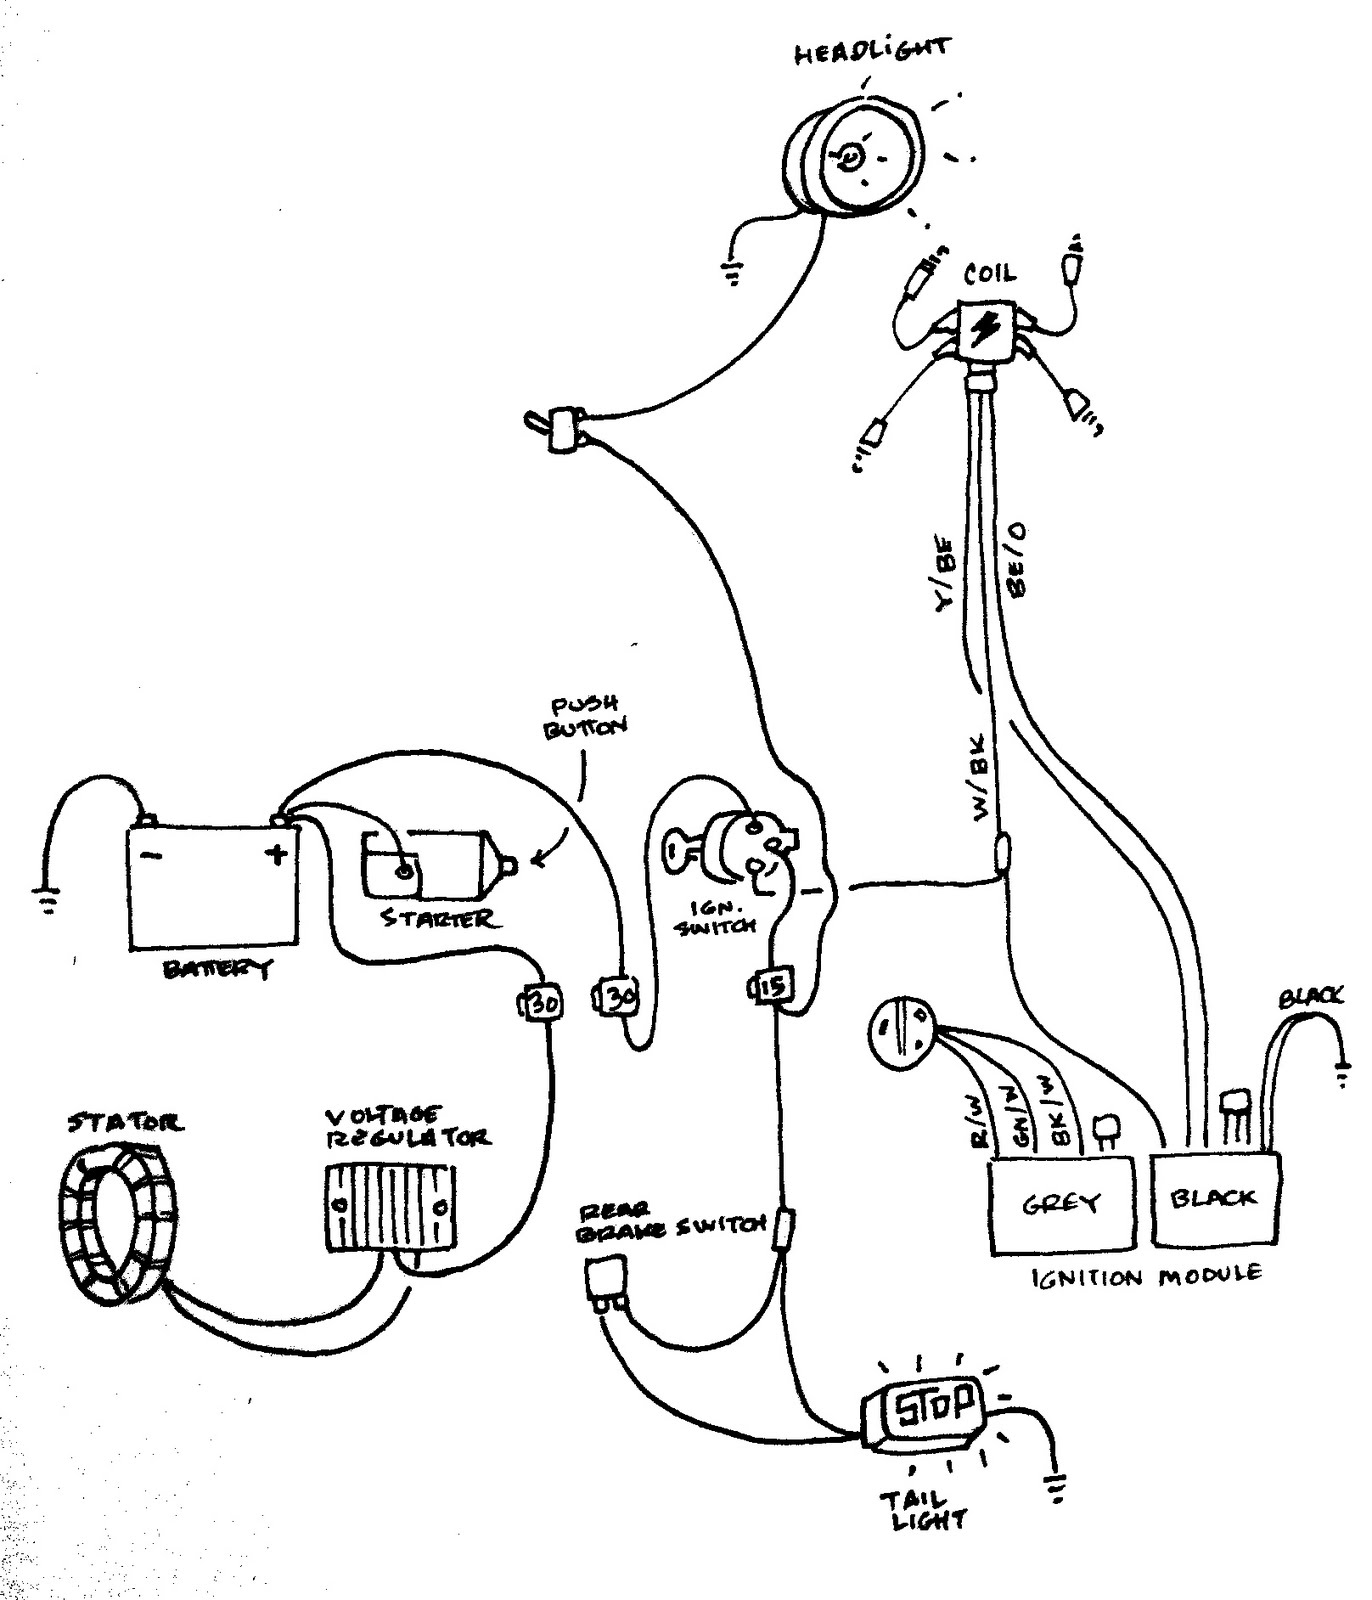 49cc pocket bike wiring diagram get free image about 49cc 2 stroke wiring diagram 49cc scooter ignition wiring diagram [ 1372 x 1600 Pixel ]